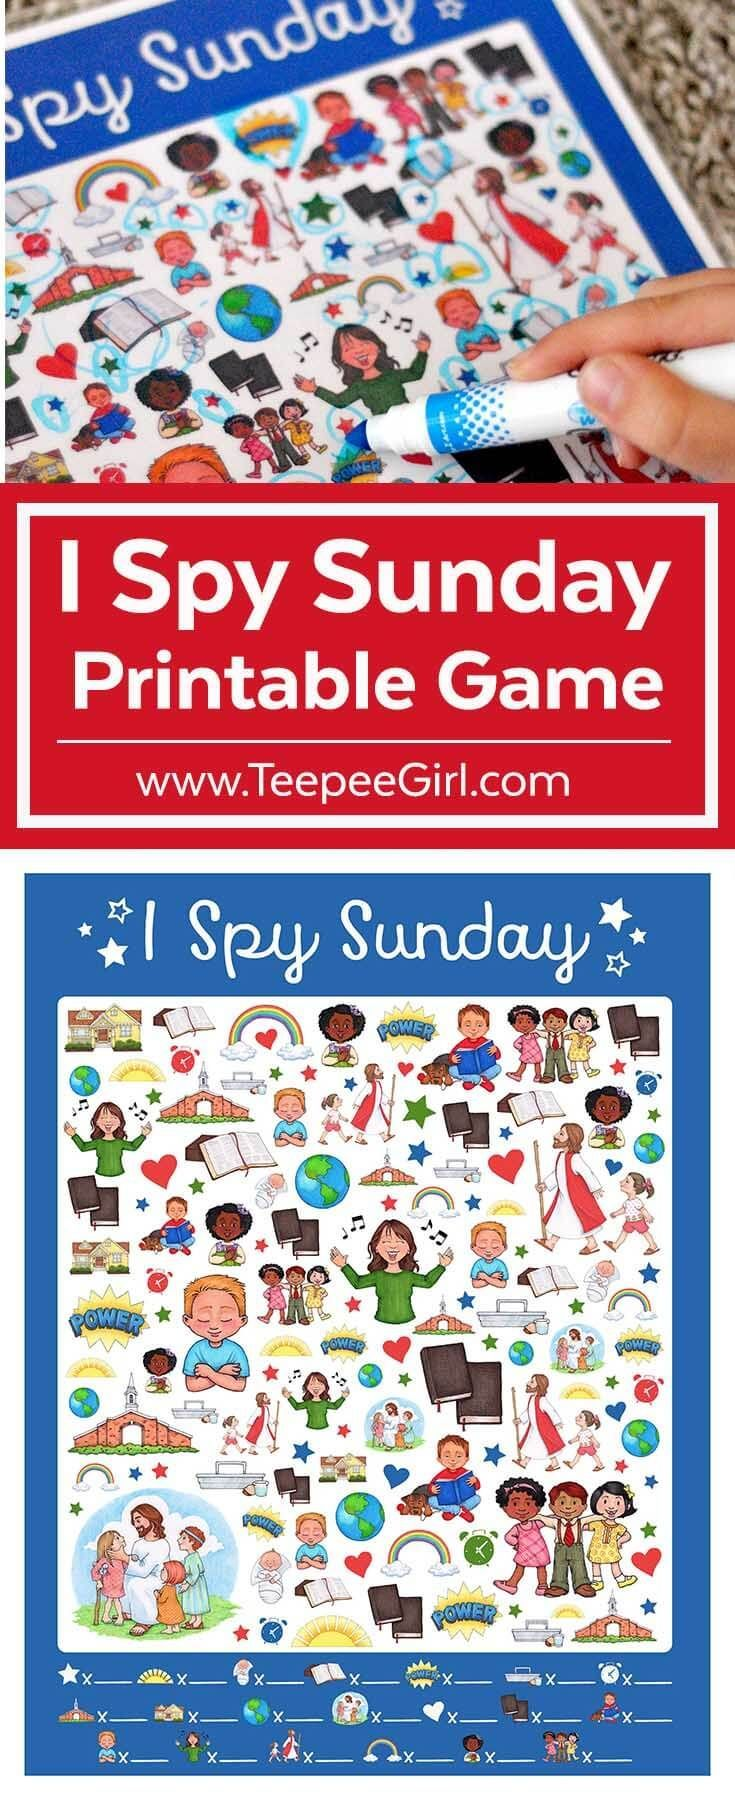 Free i spy sunday printable game sunday school churches for Spy crafts for kids